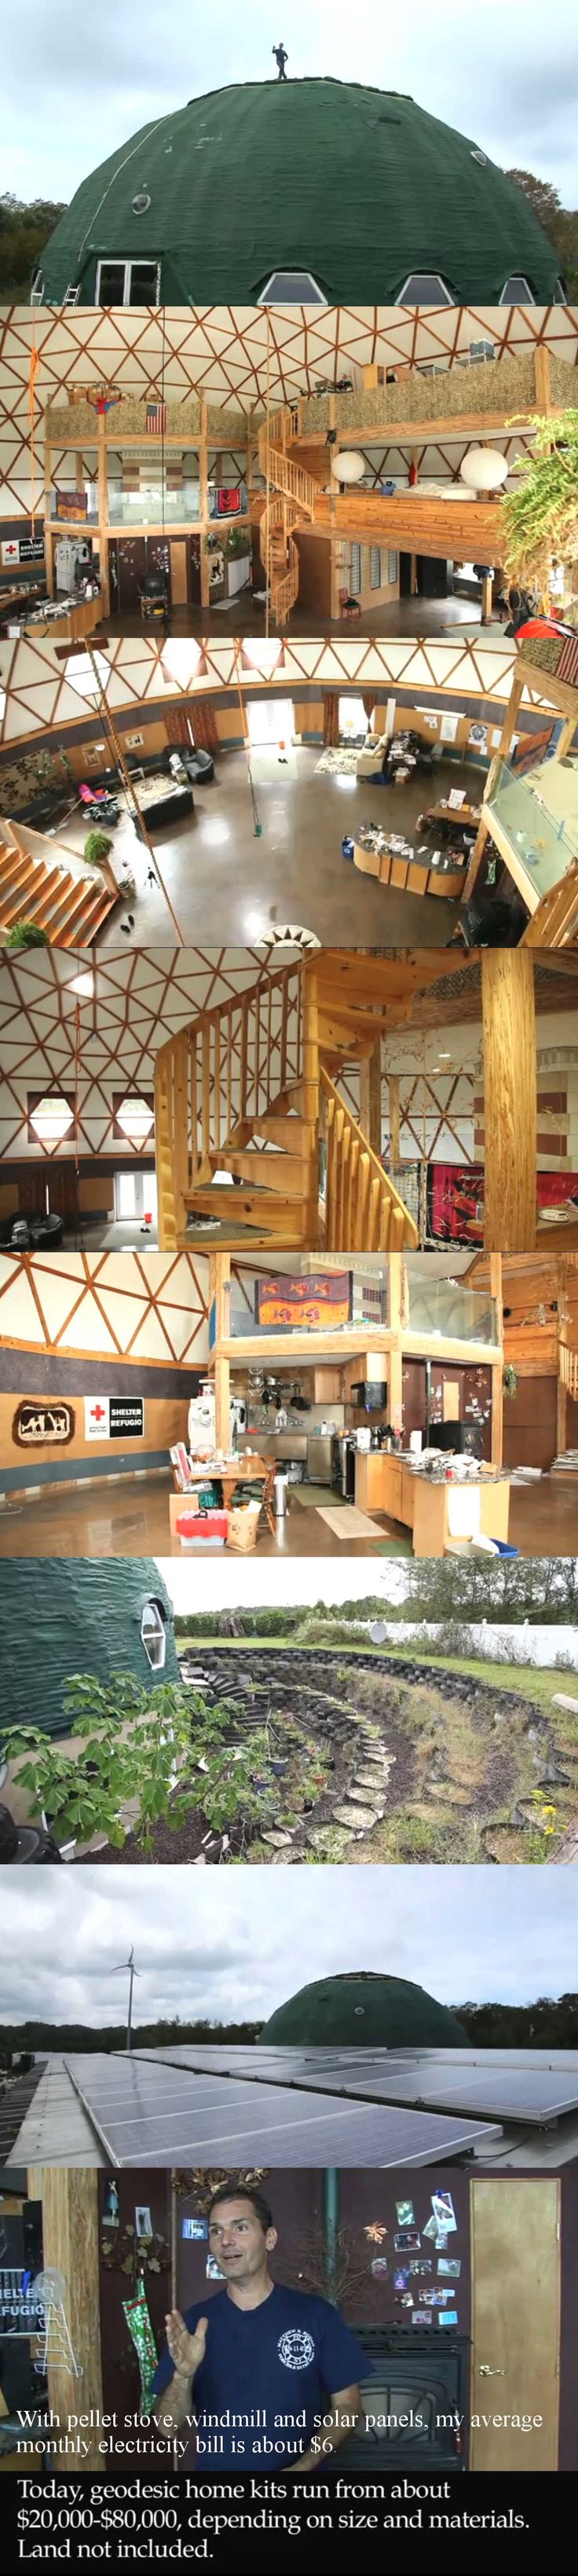 Wonderful example of a classy, energy efficient geodesic dome-home. Great  video found